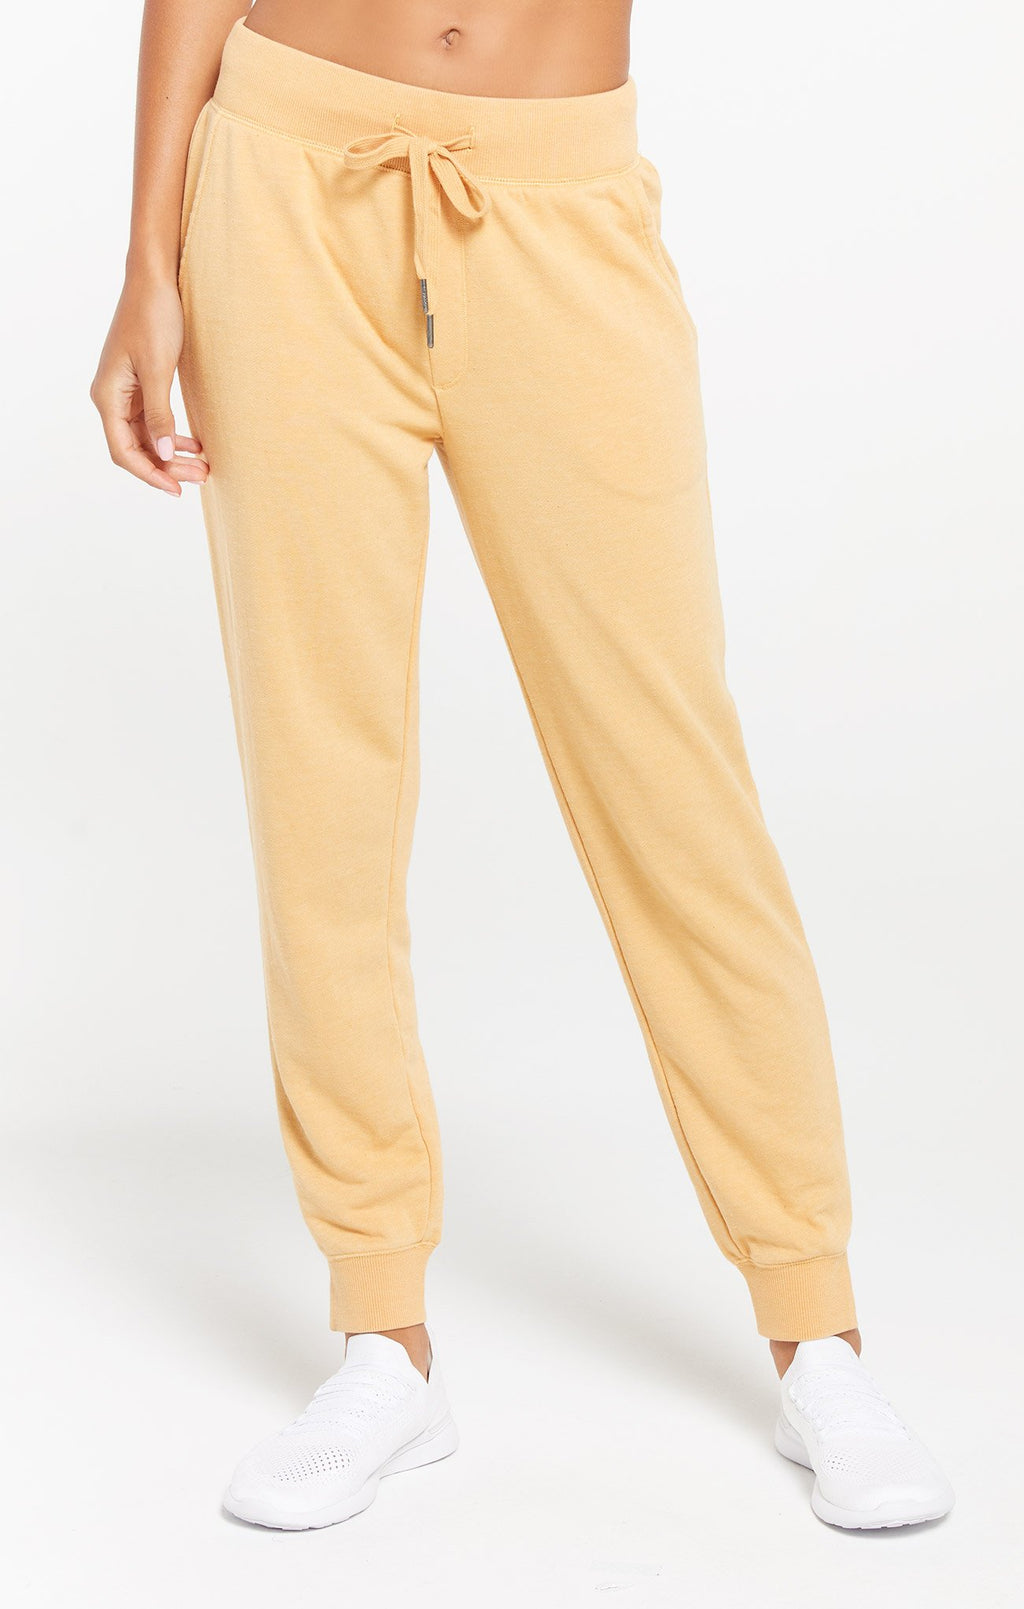 Z Supply Cypress Dandelion Loop Terry Jogger